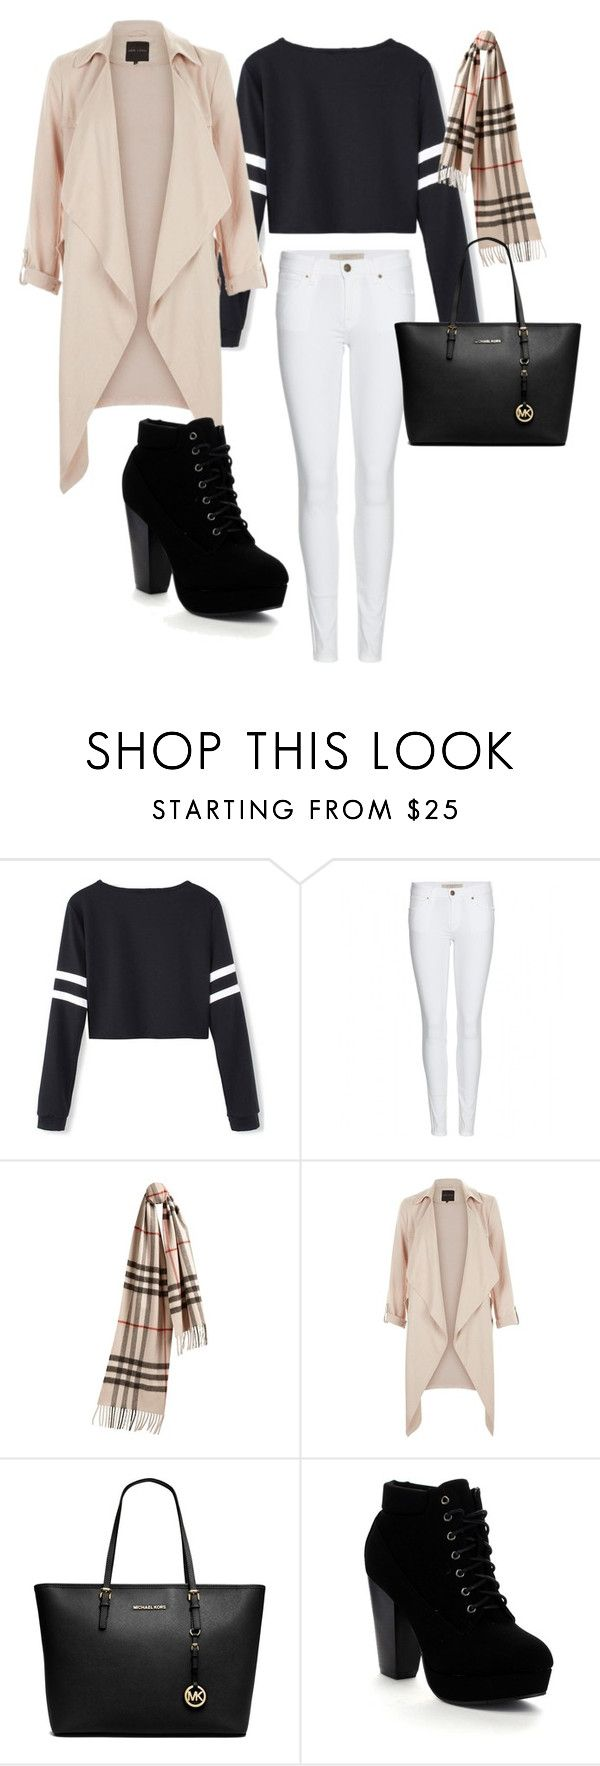 """""""casual but modern winter-spring wear"""" by klara-kandare ❤ liked on Polyvore featuring beauty, Burberry, Michael Kors, Beston and modern"""